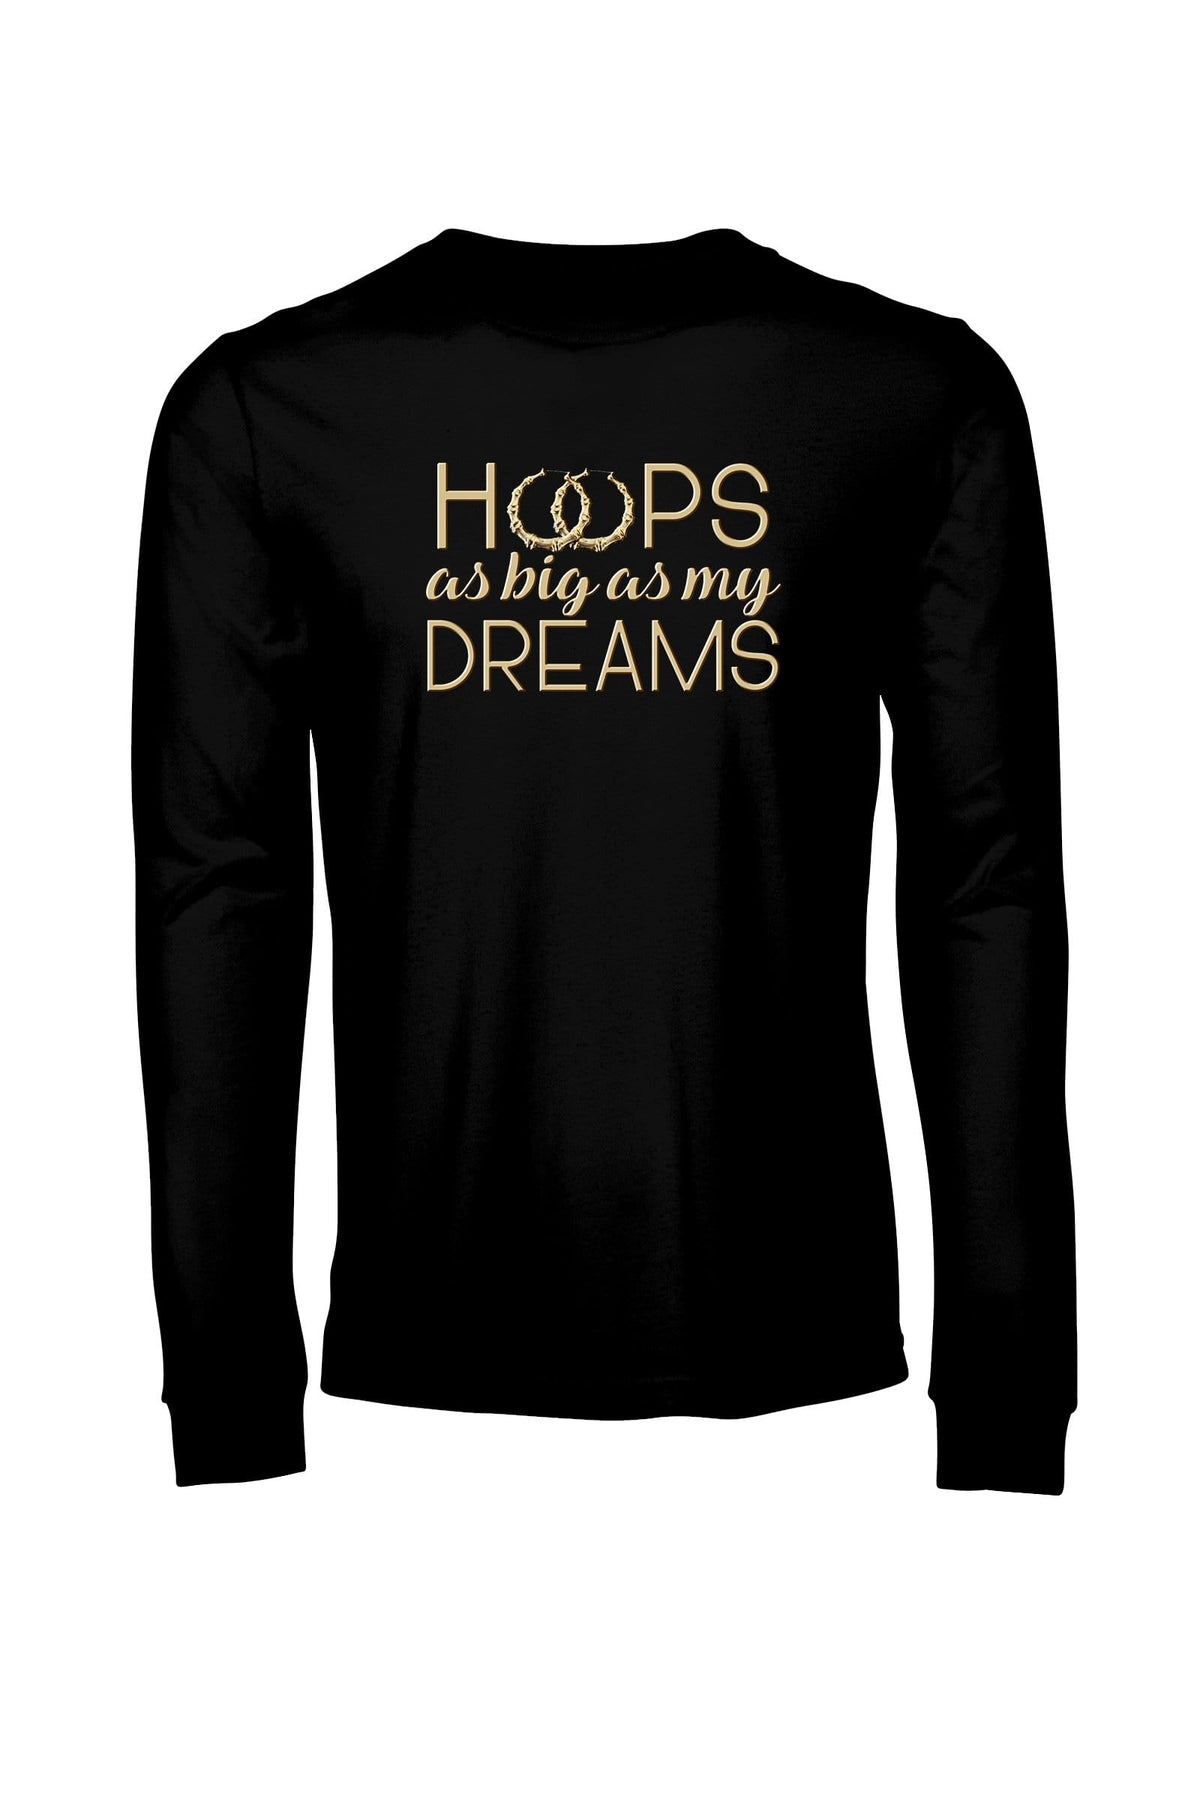 Hoops As Big As My Dreams Long Sleeve - Unisex